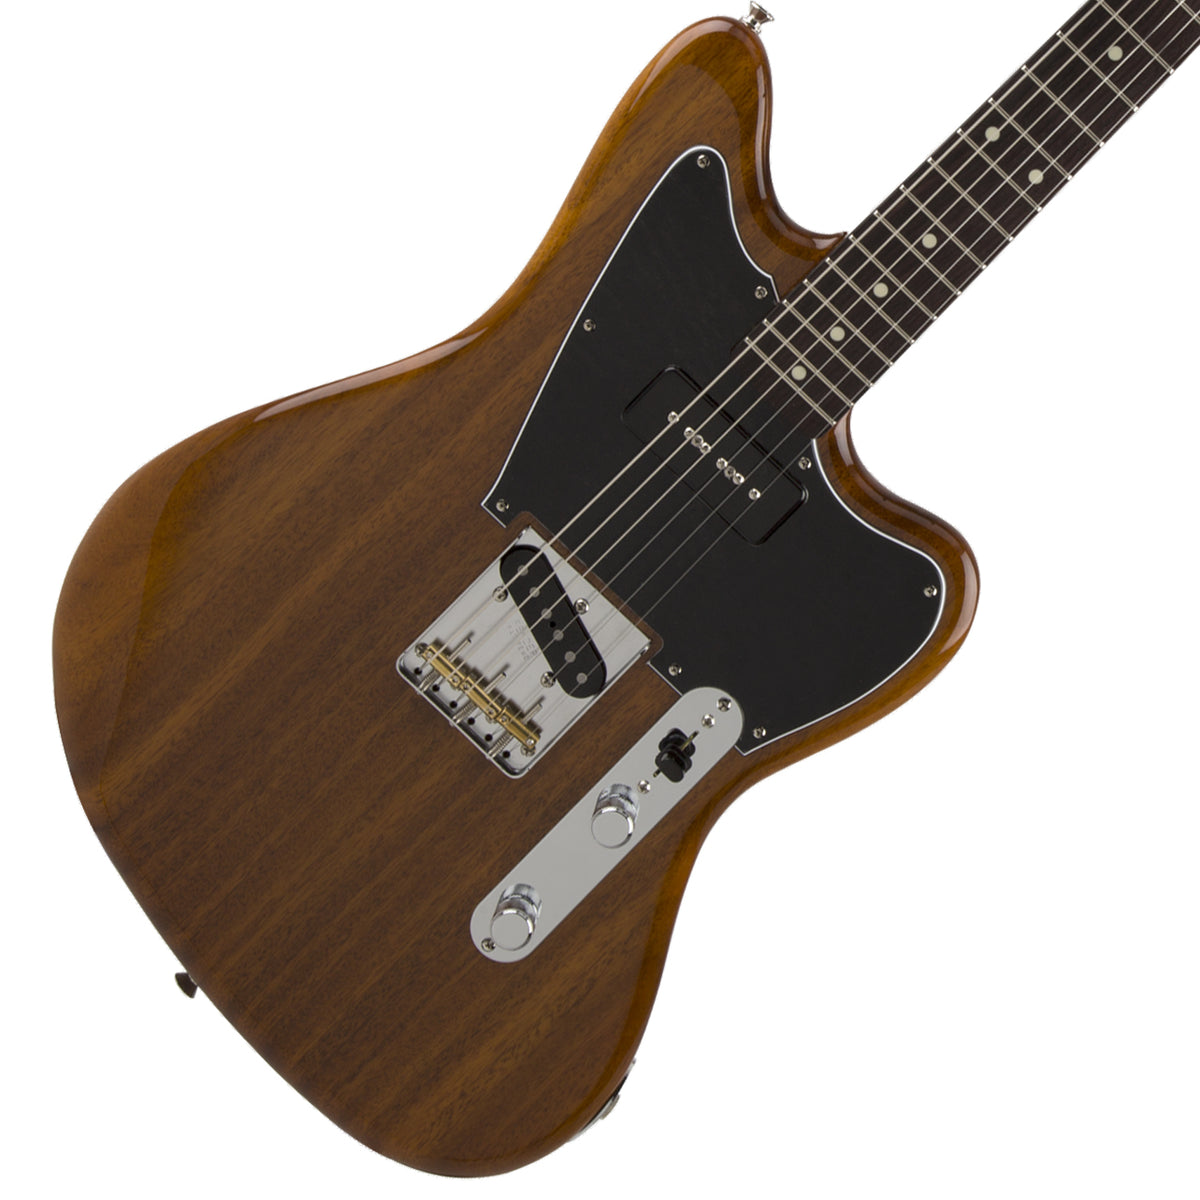 MADE IN JAPAN MAHOGANY OFFSET TELECASTER®